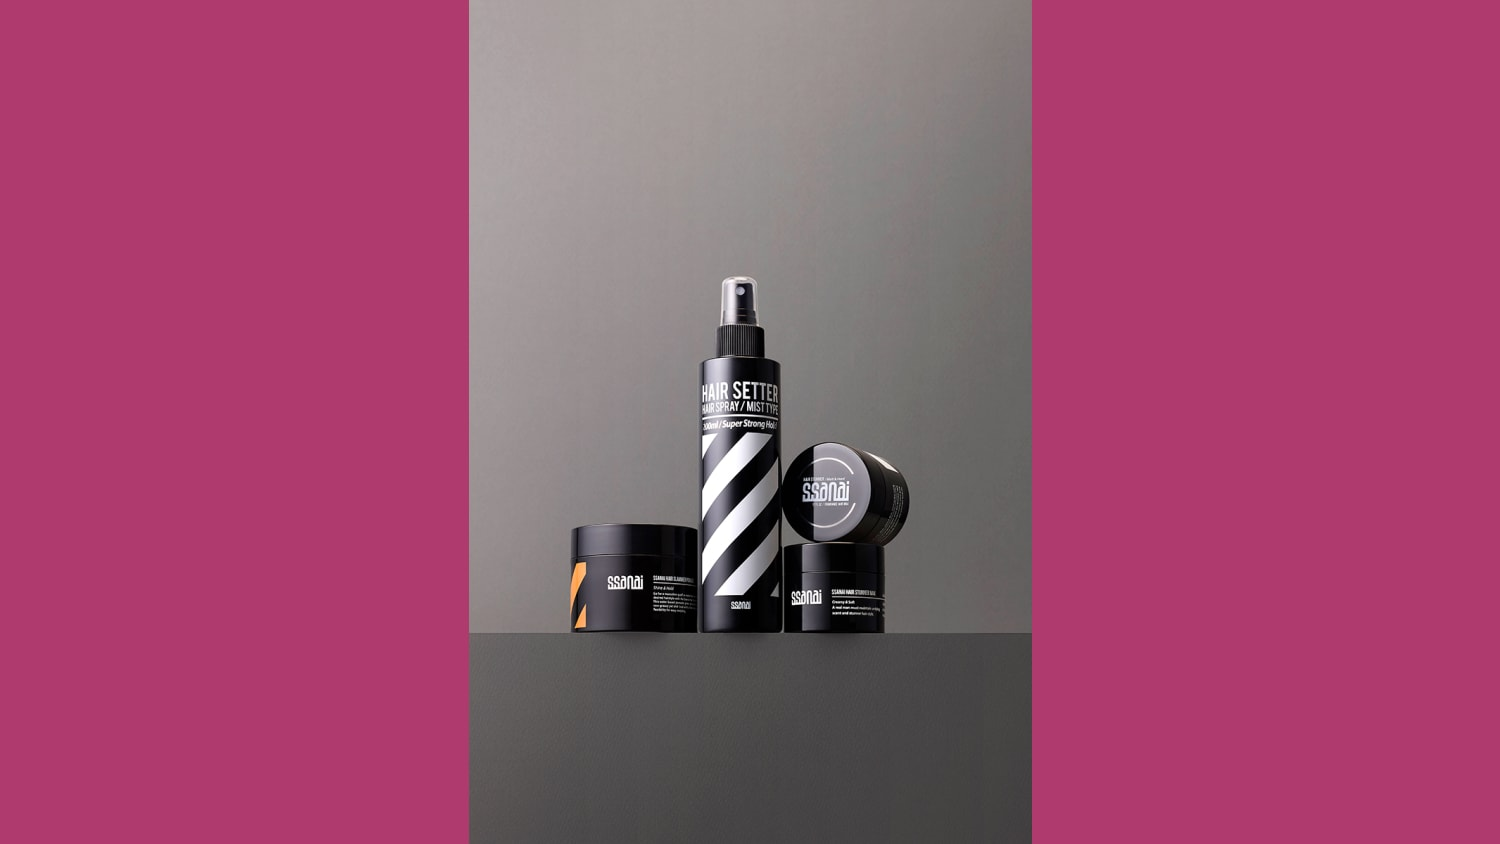 WEB SSANAI HAIR STYLING PRODUCTS eum O148144 re